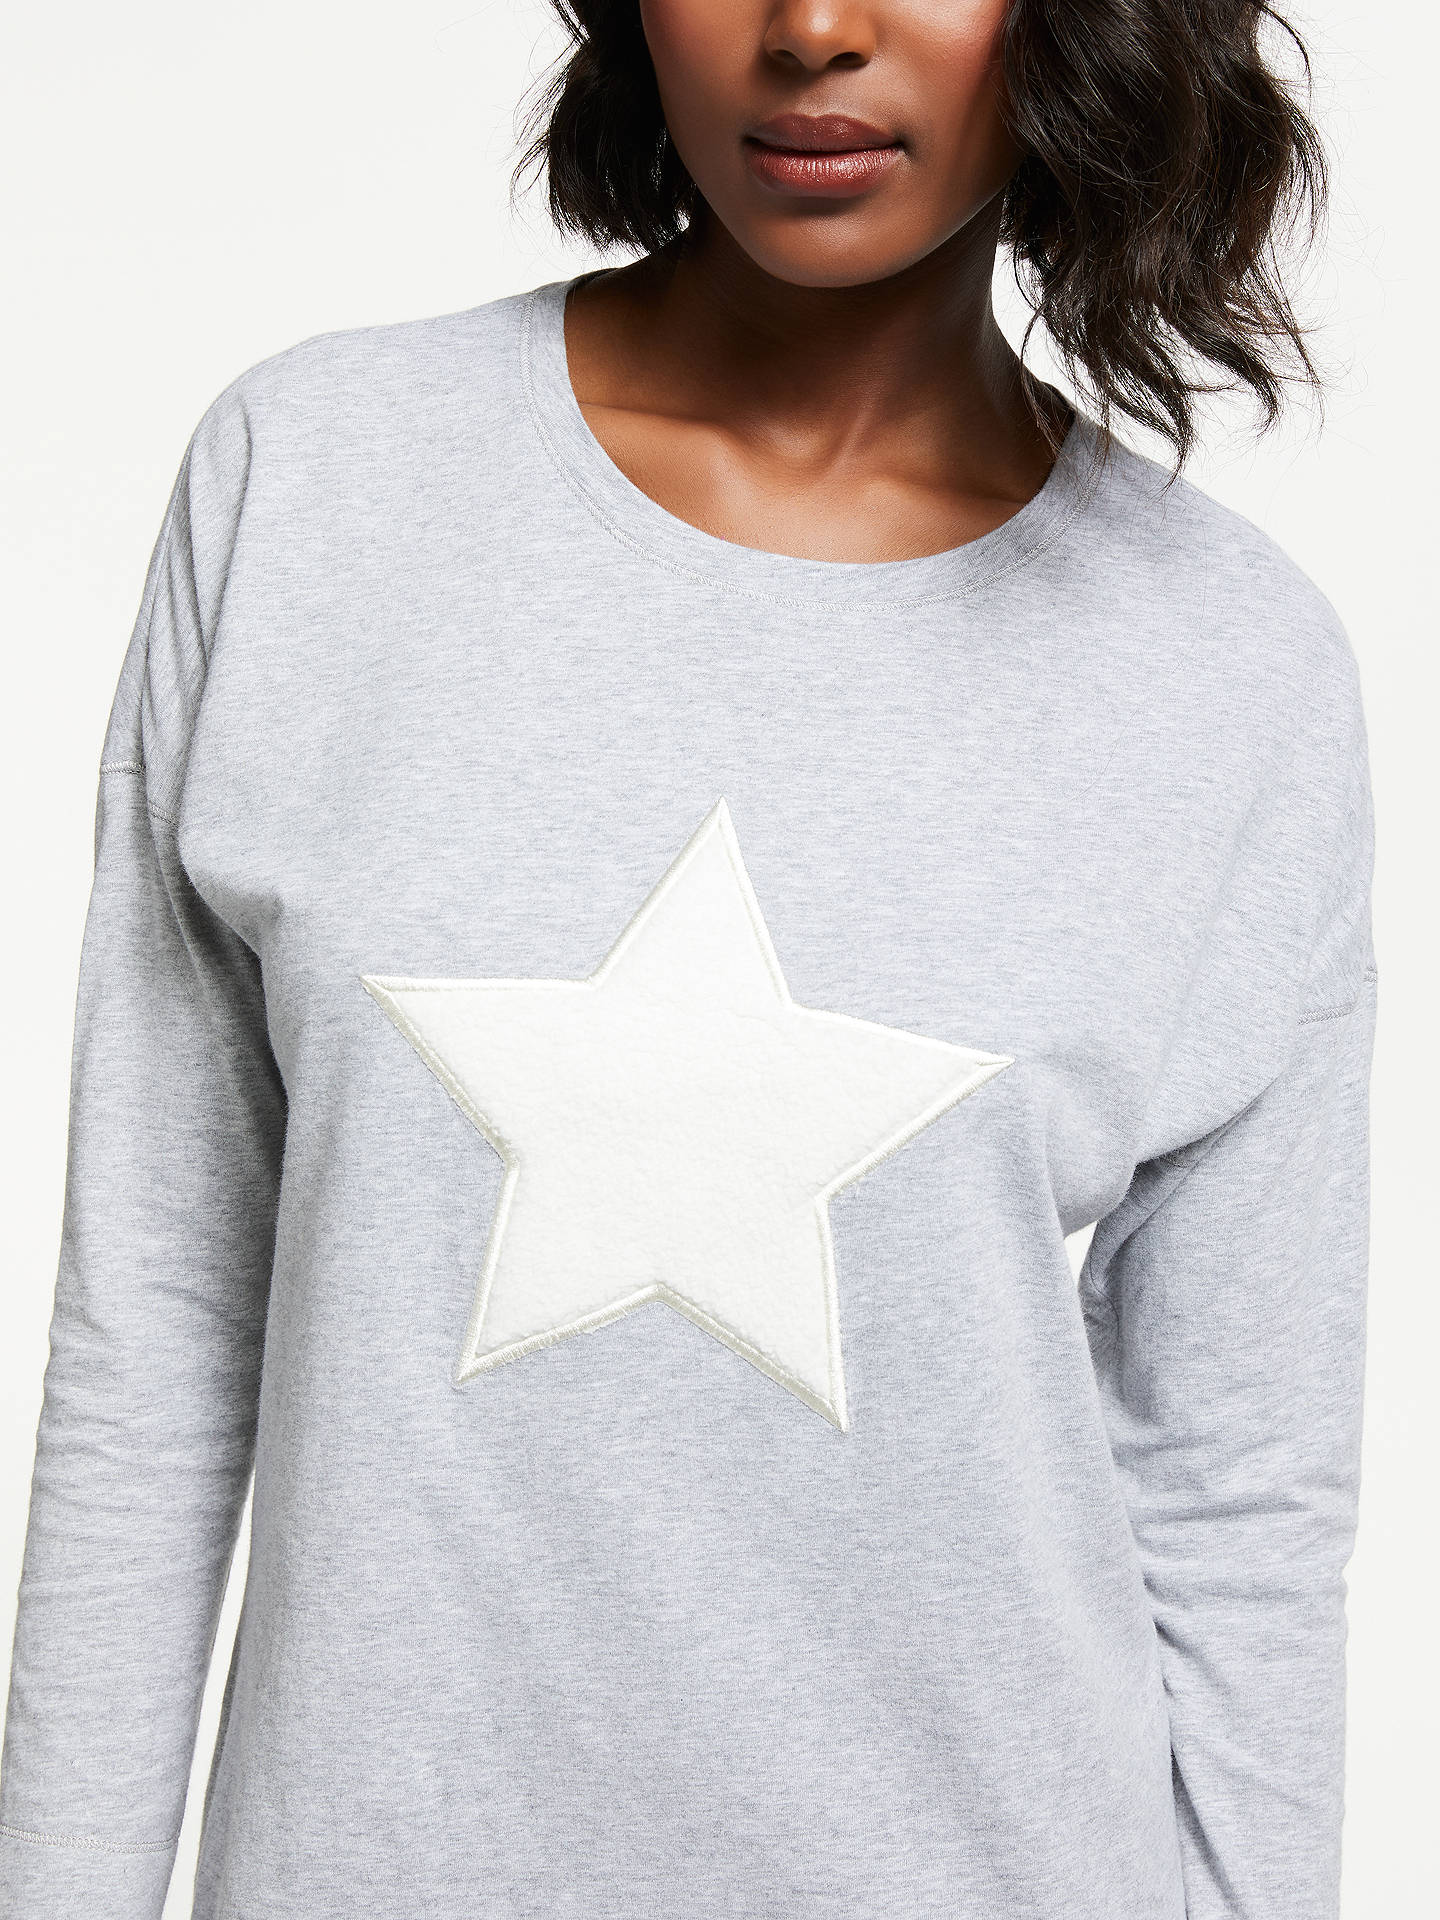 Buy John Lewis & Partners Furry Star Cotton Nightdress, Grey, 8 Online at johnlewis.com